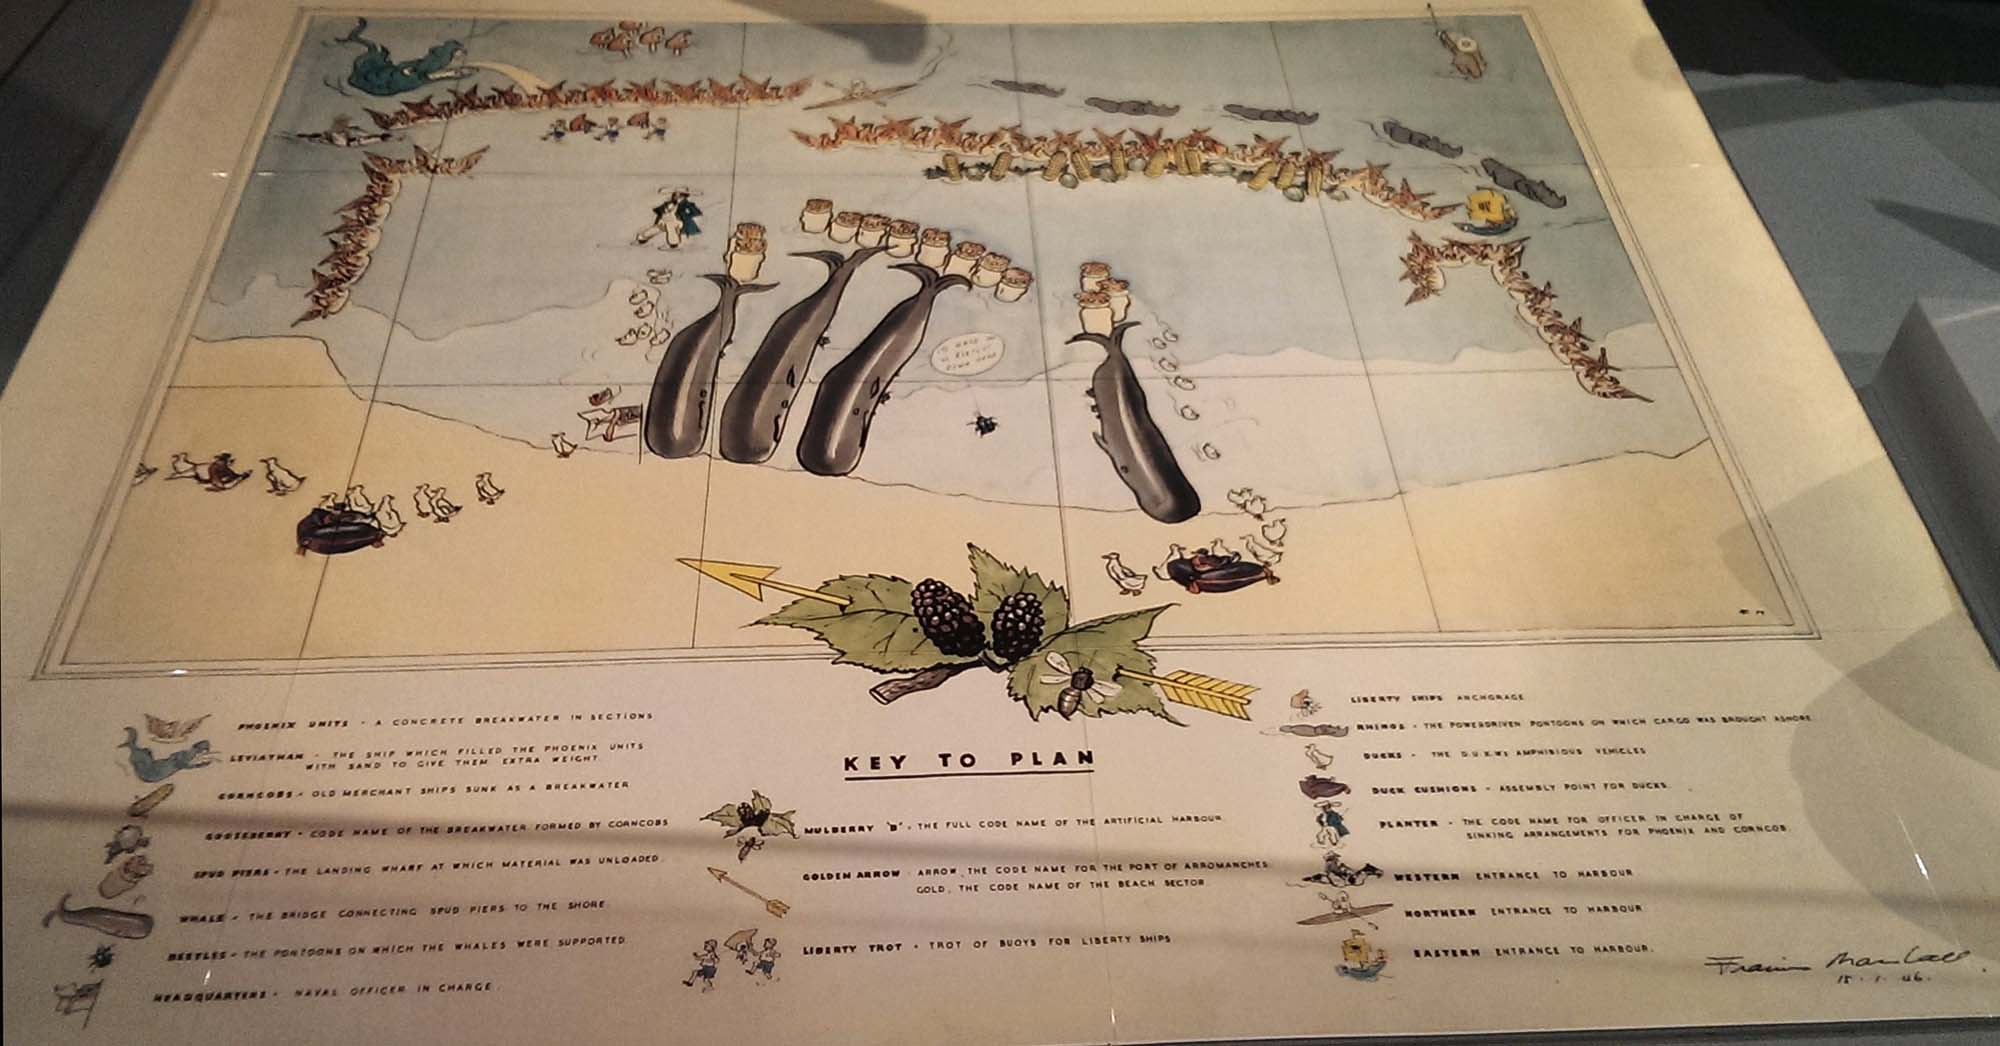 a photo of a cartoon printed map of the Mulberry harbours of D-Day with sea creatures represnting the harbours and barges etc